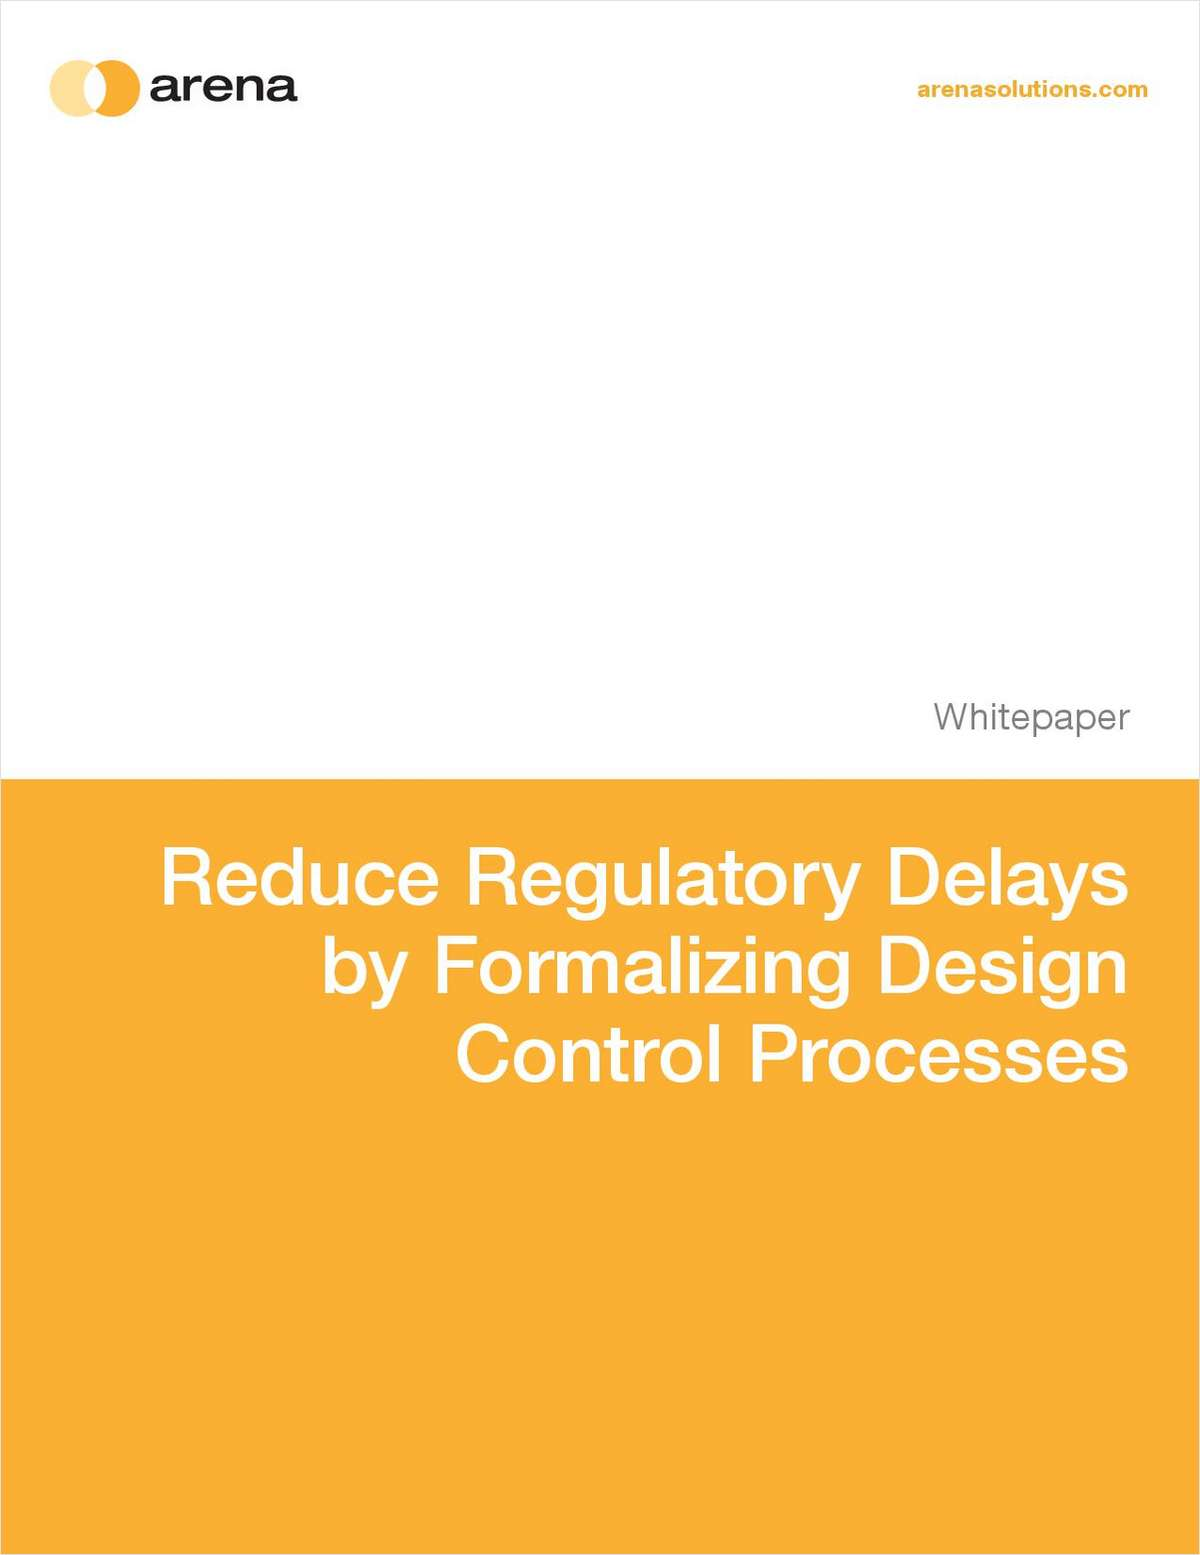 How to Reduce Regulatory Delays by Formalizing Design Control Processes